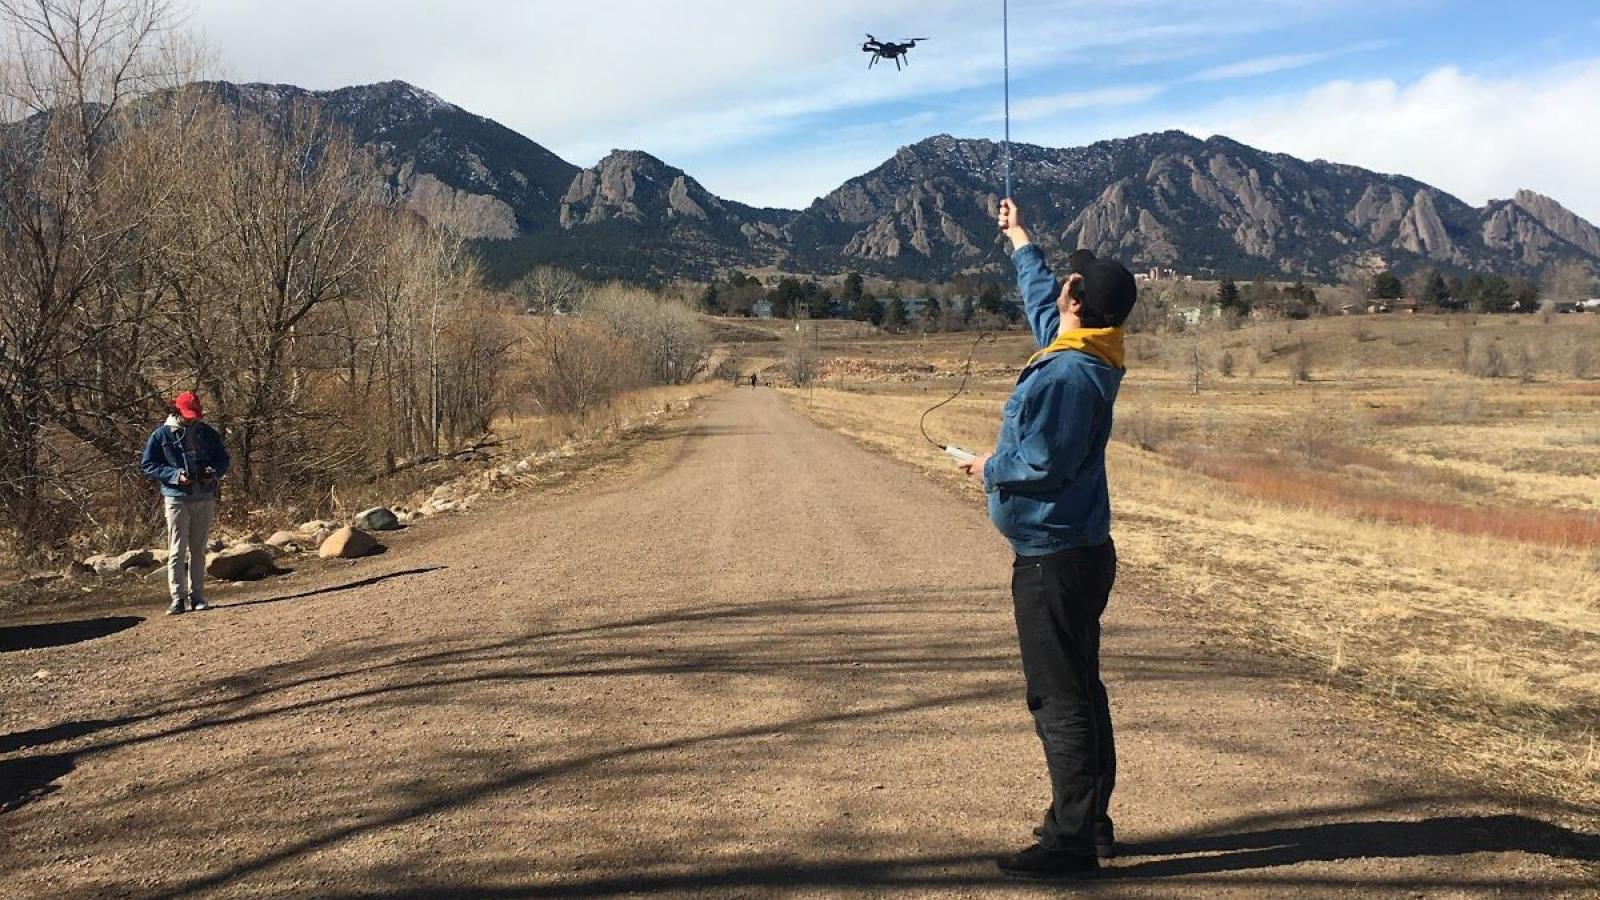 Testing the device in view of the Flatirons